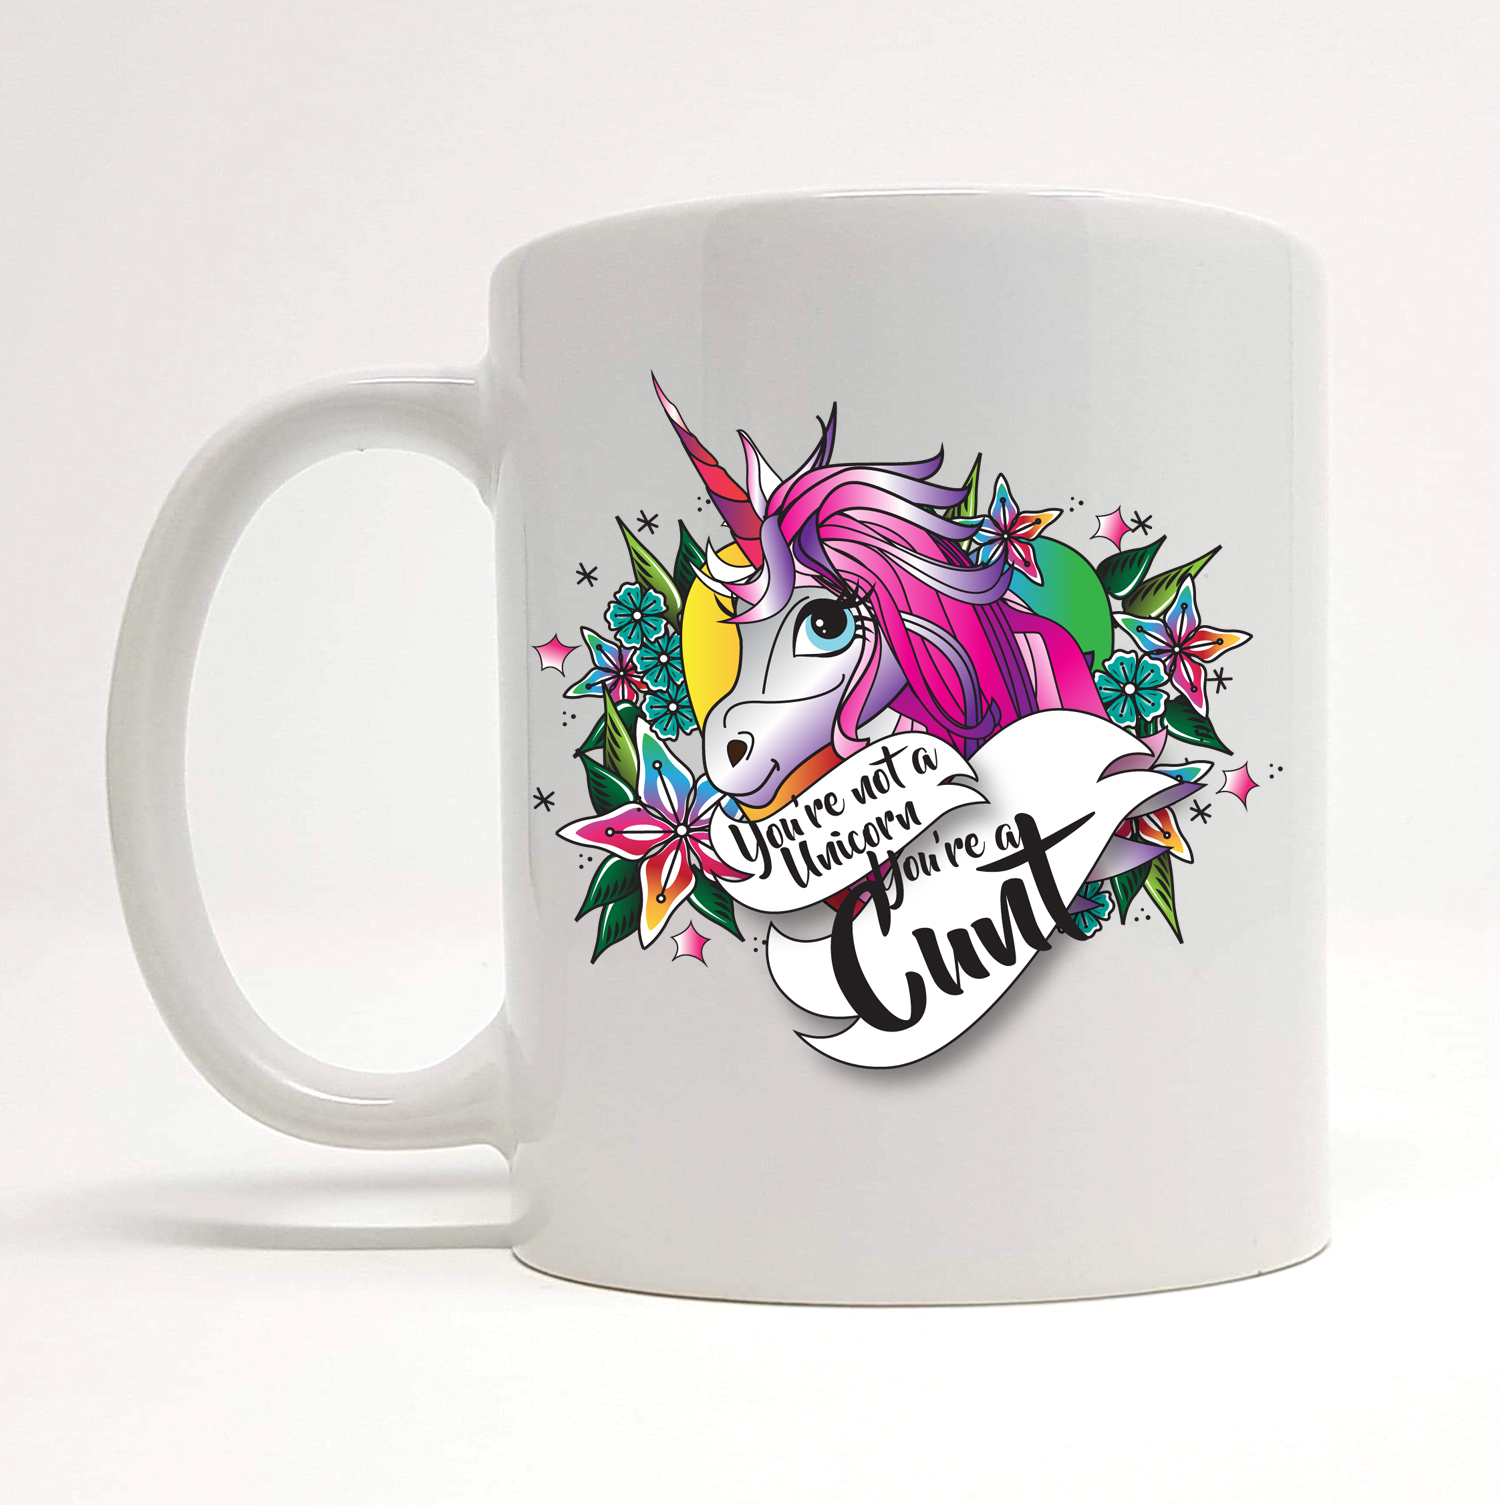 not a unicorn mug by Beautifully Obscene